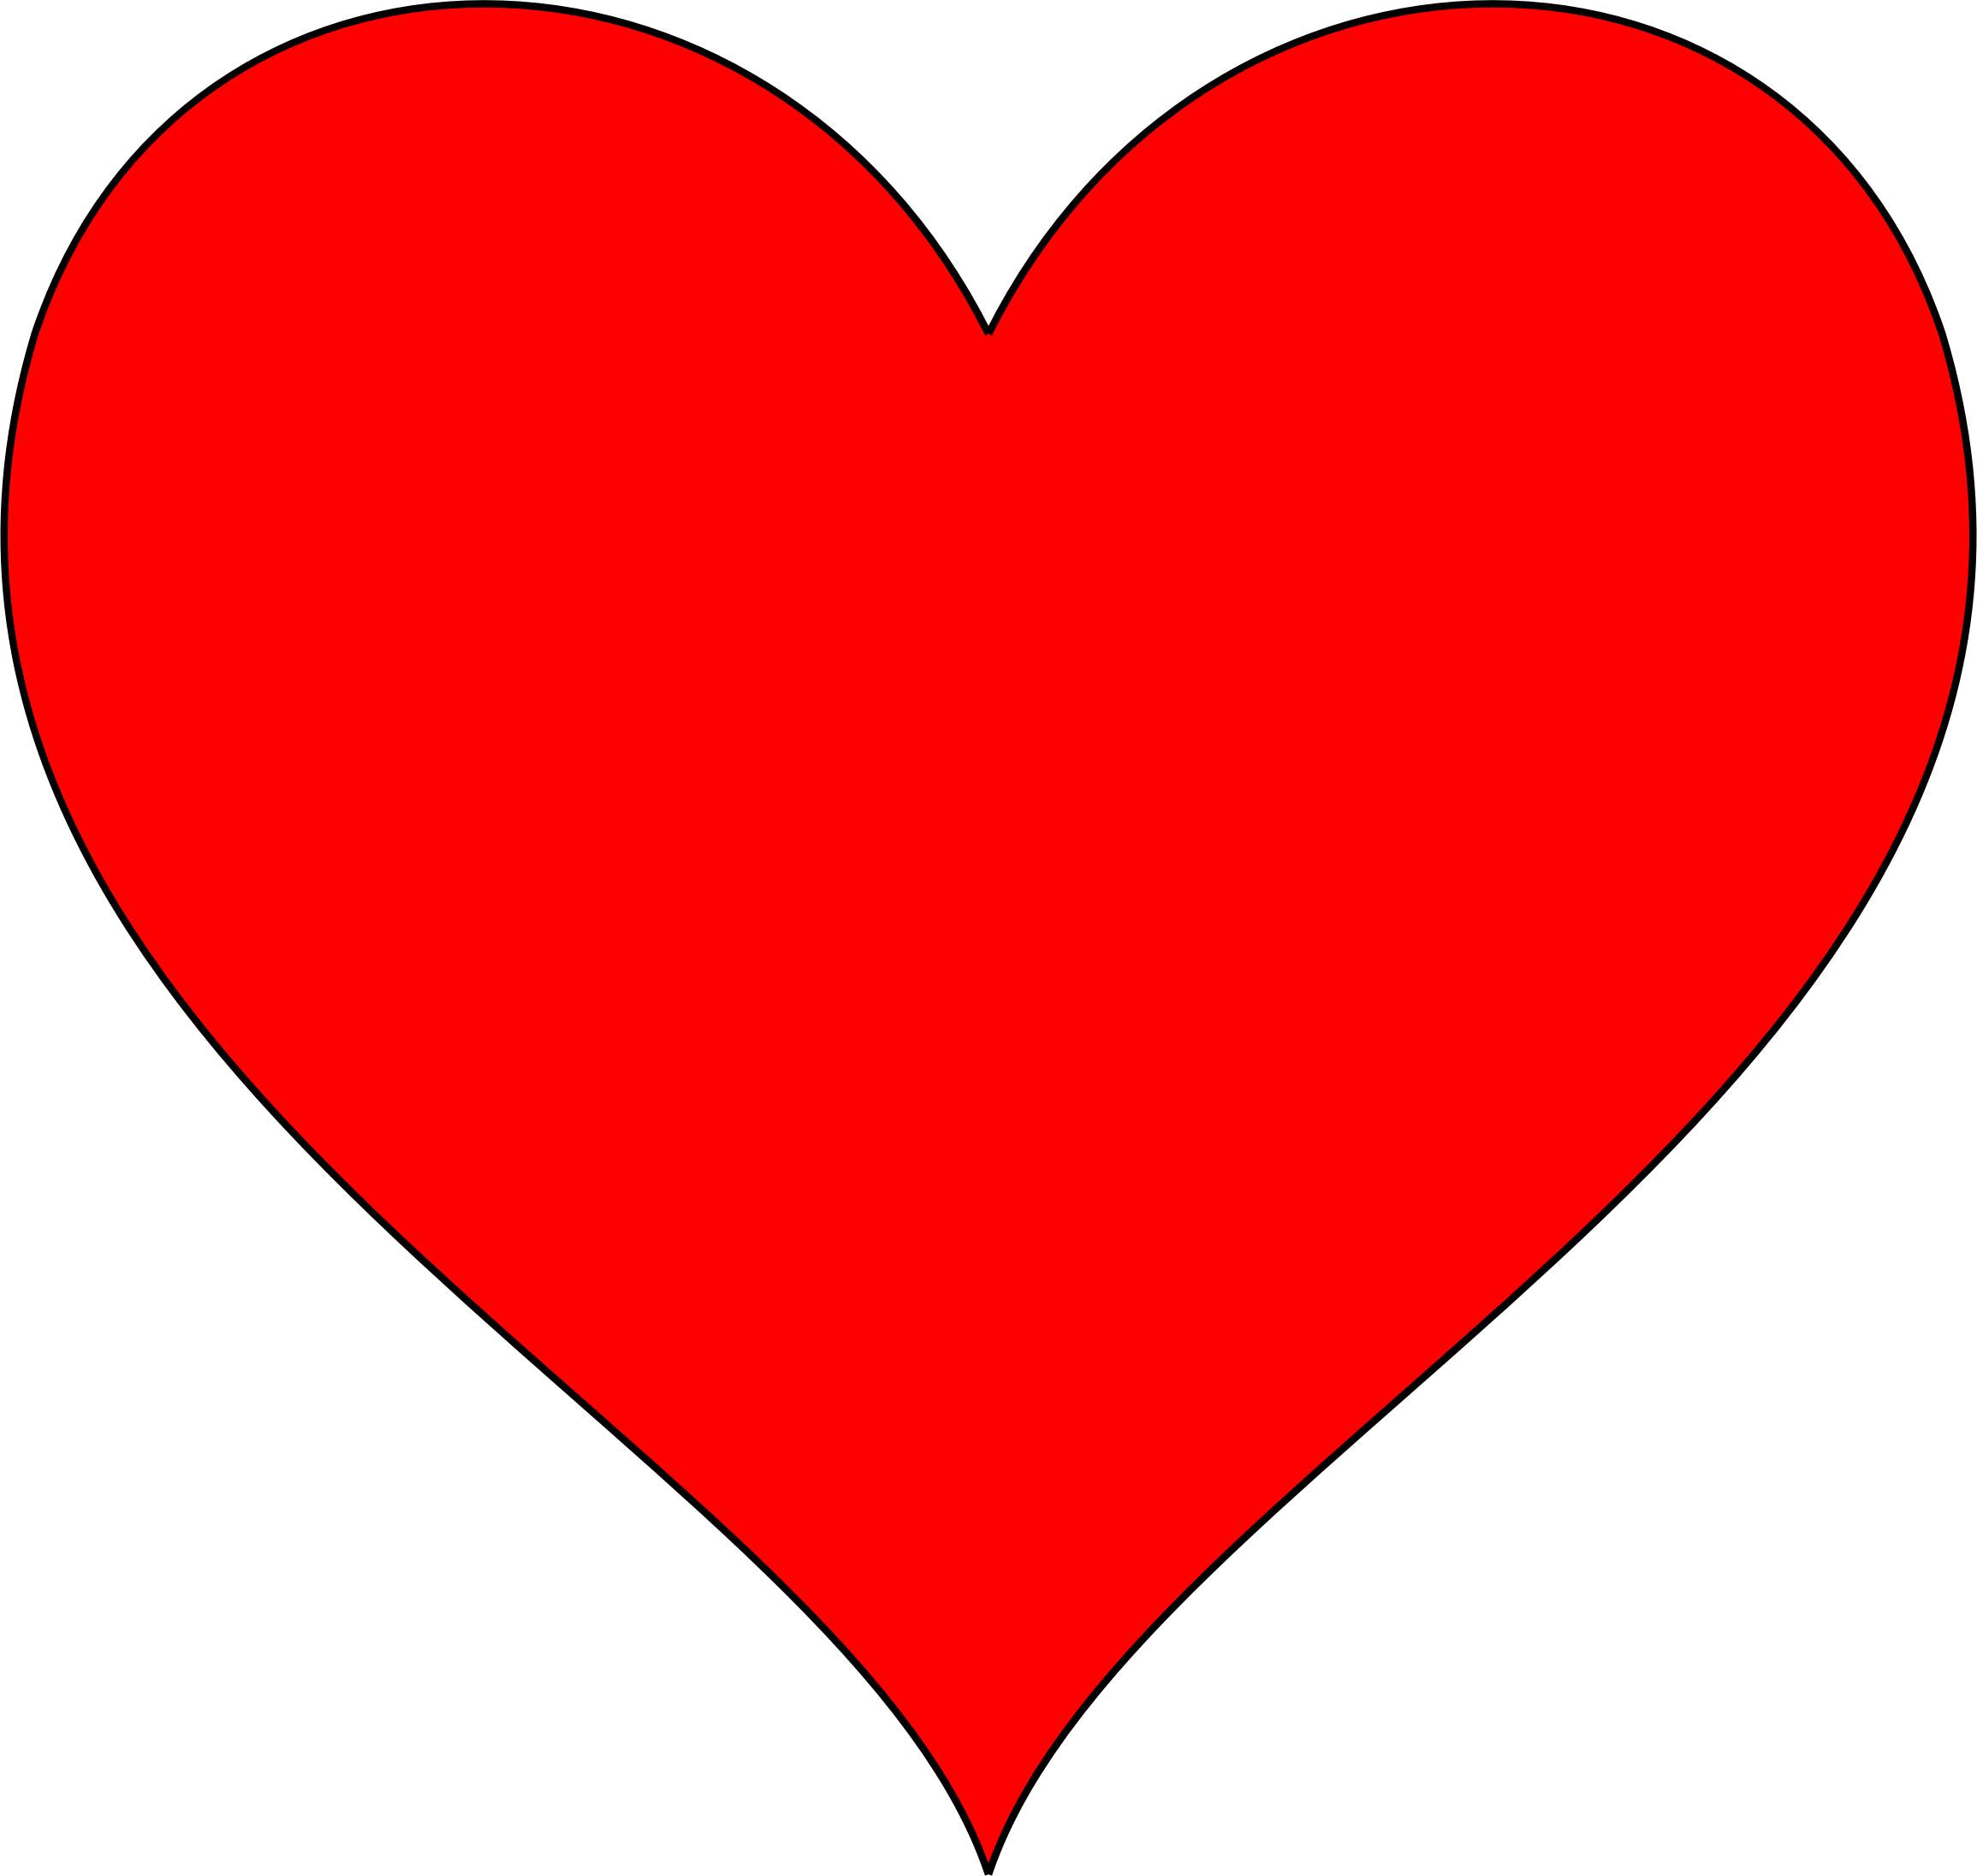 Square clipart love. Free photo heart sign